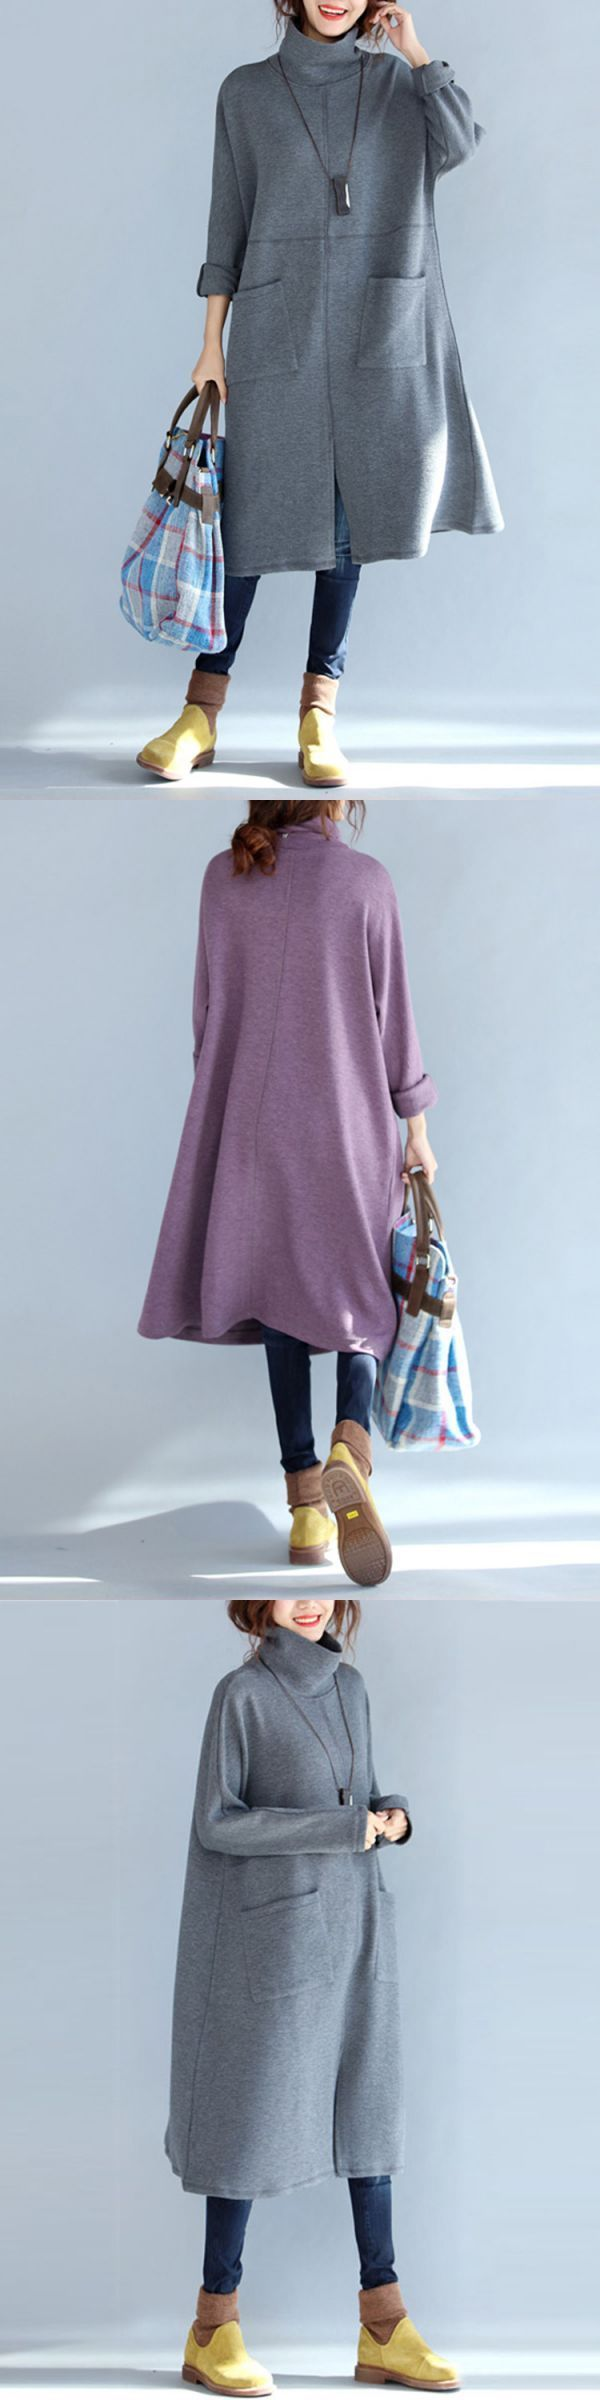 Casual women long sleeve solid color turtleneck dress with pockets casual dresses long #casual #dress #for #60 #year #old #woman #casual #dresses #high #street #pictures #of #casual #dresses #for #ladies #zalando #casual #dresses